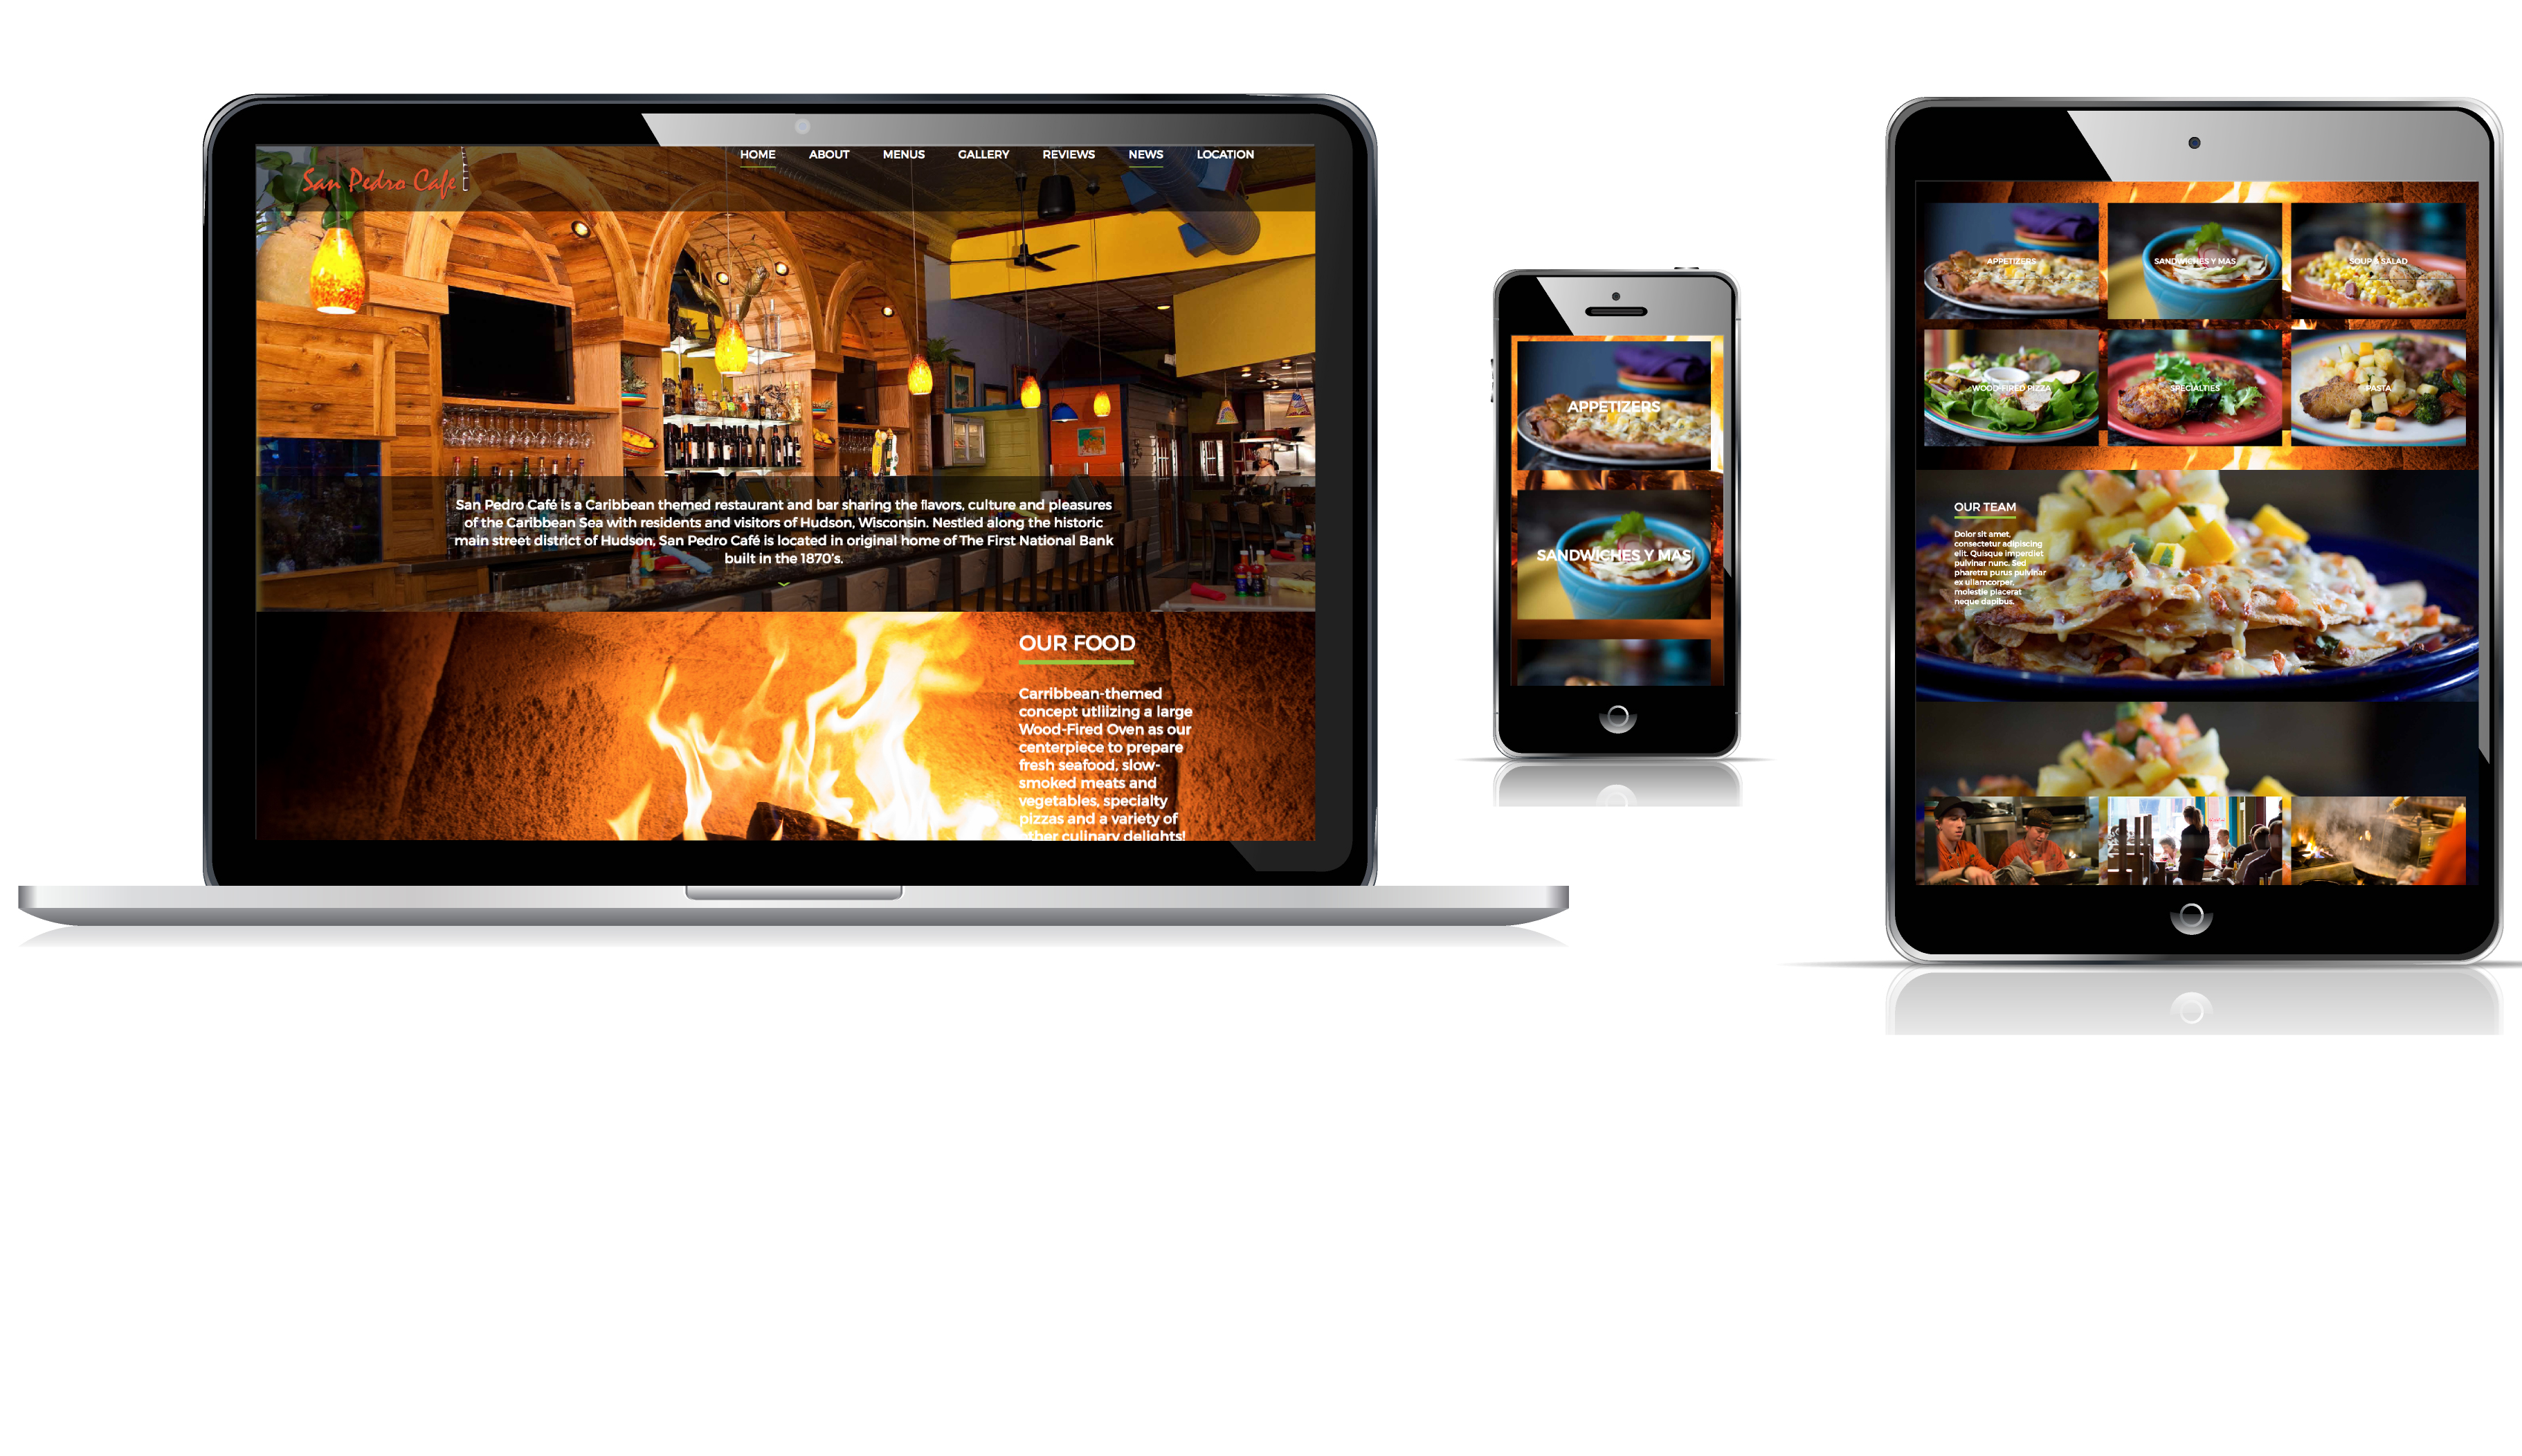 San Pedro Cafe WordPress Website Redesign